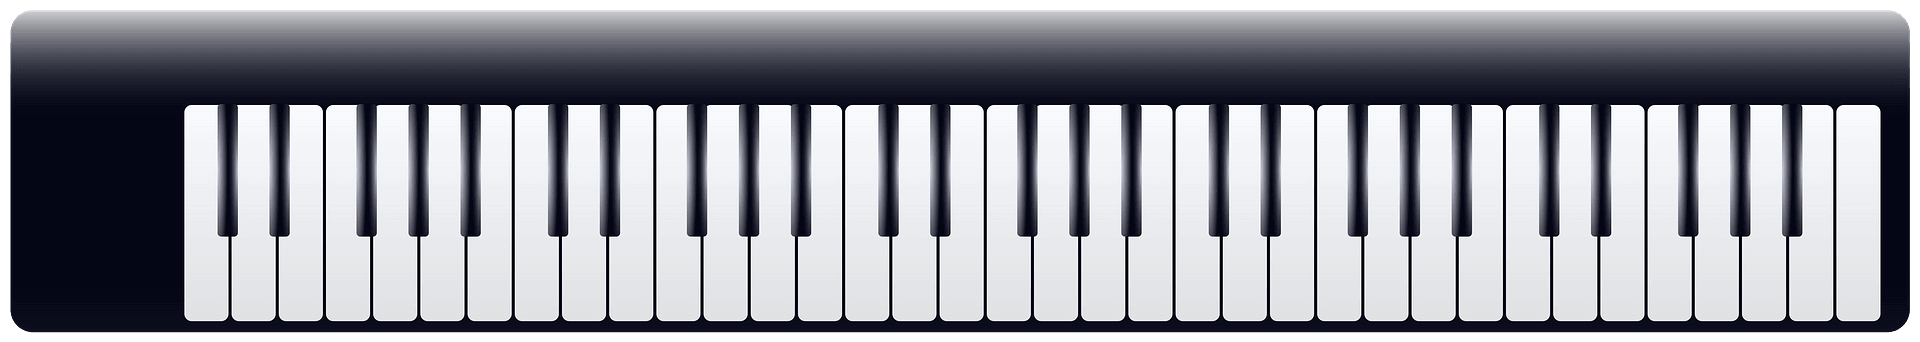 Piano Keyboard clipart transparent